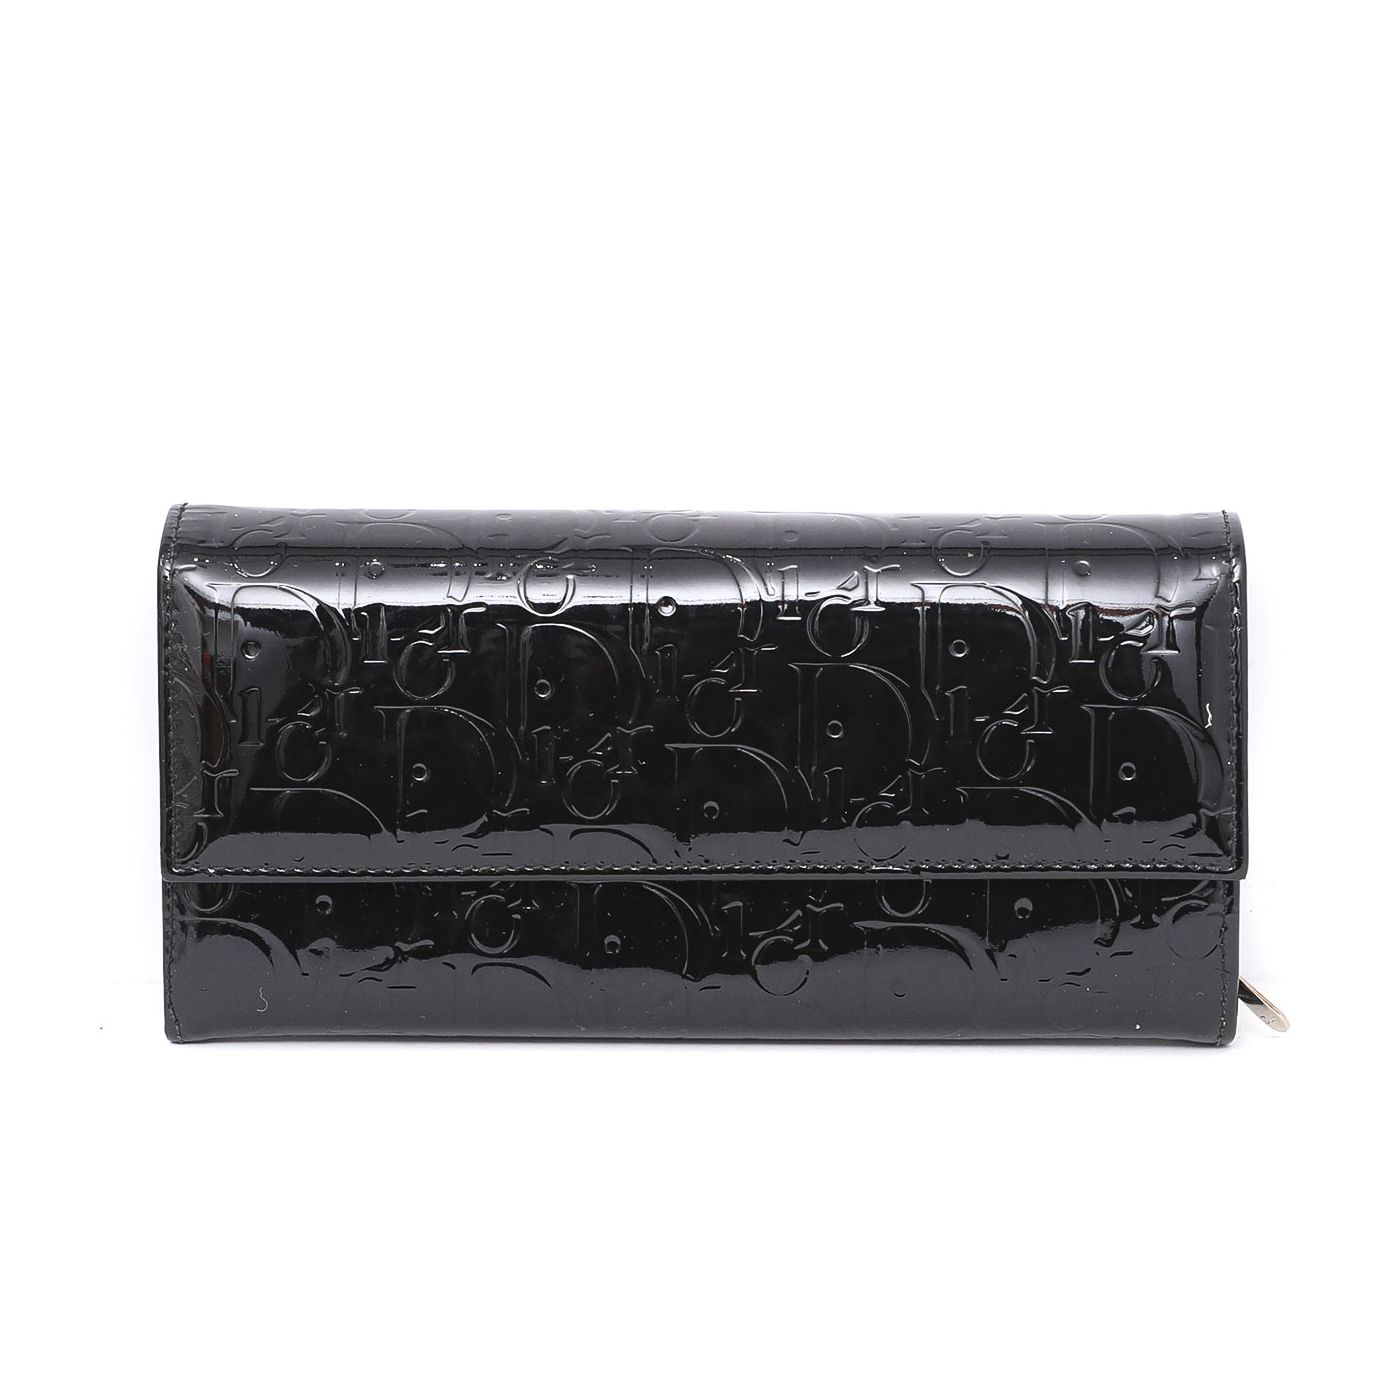 Dior monogram flap long wallet black